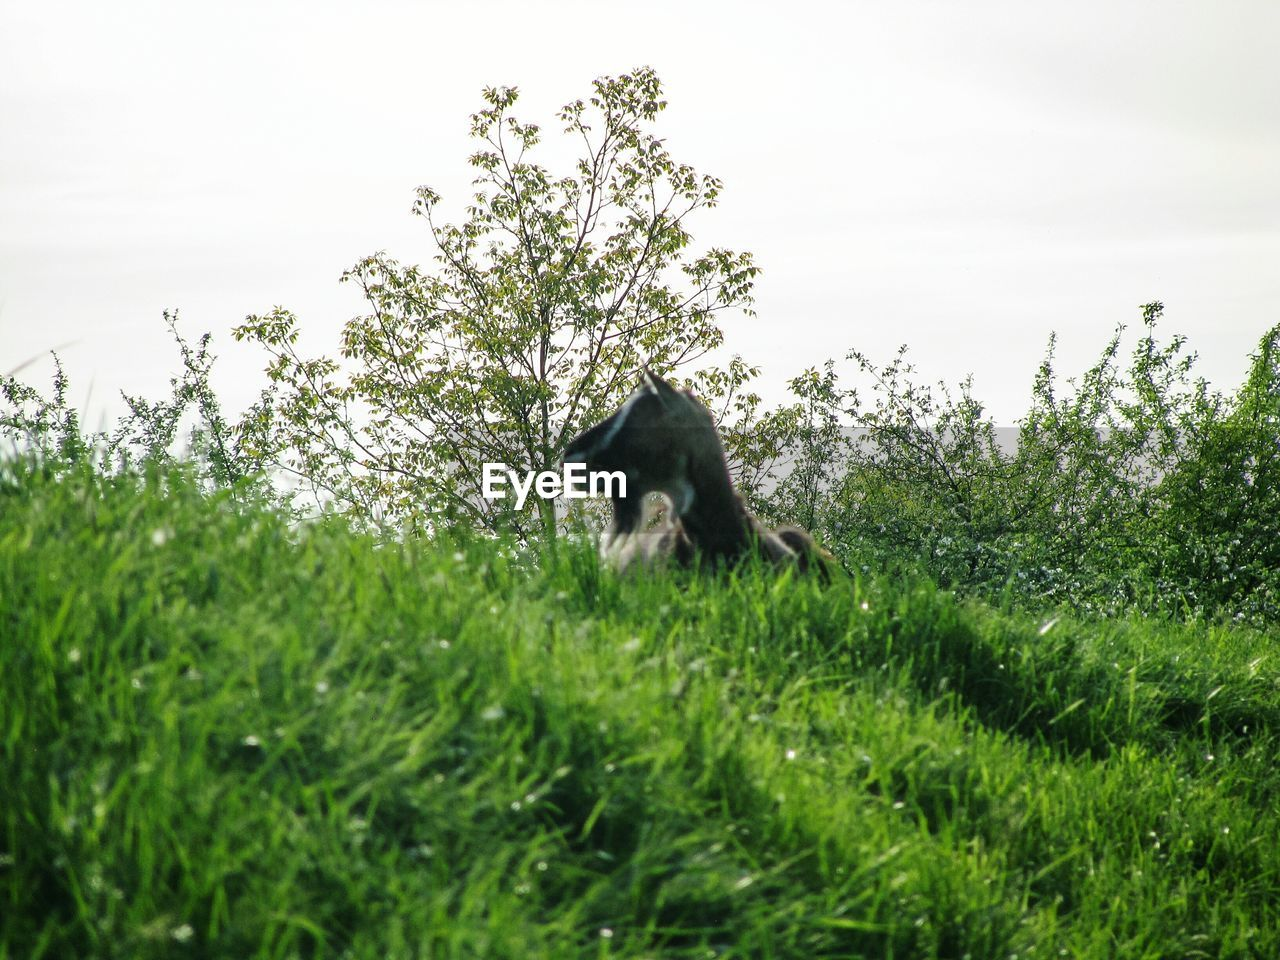 mammal, animal, plant, animal themes, one animal, grass, sky, vertebrate, nature, growth, domestic animals, animal wildlife, domestic, no people, animals in the wild, pets, green color, land, tree, field, outdoors, herbivorous